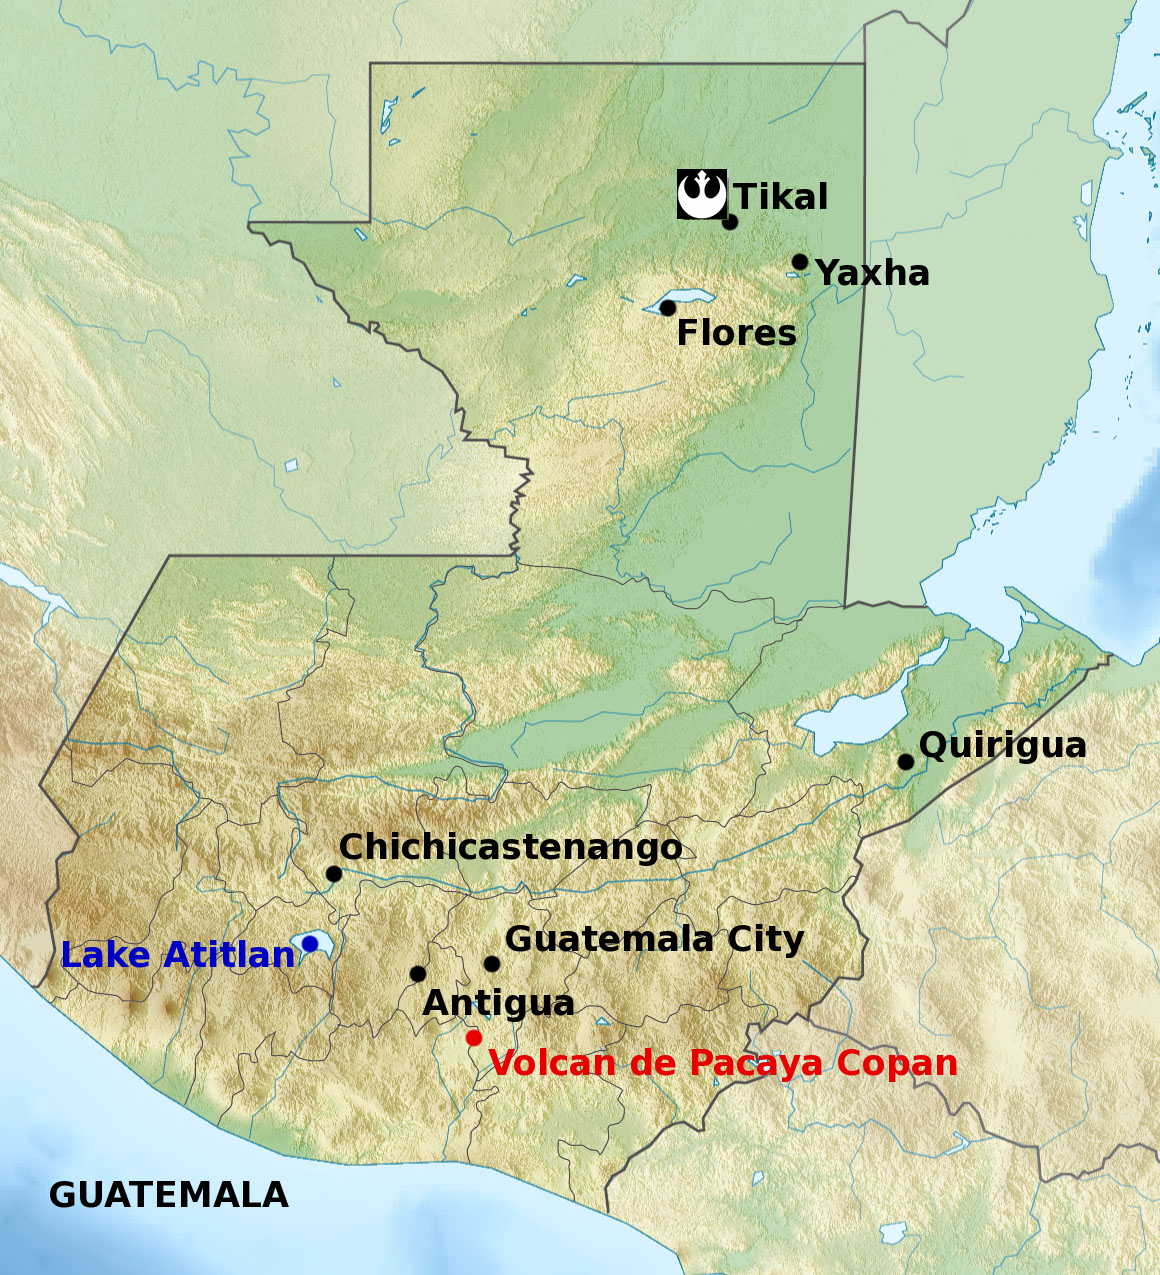 Galactic backpacking part 3 visiting real world yavin 4 starwars map of guatemala showing the shooting location and other important destinations gumiabroncs Gallery